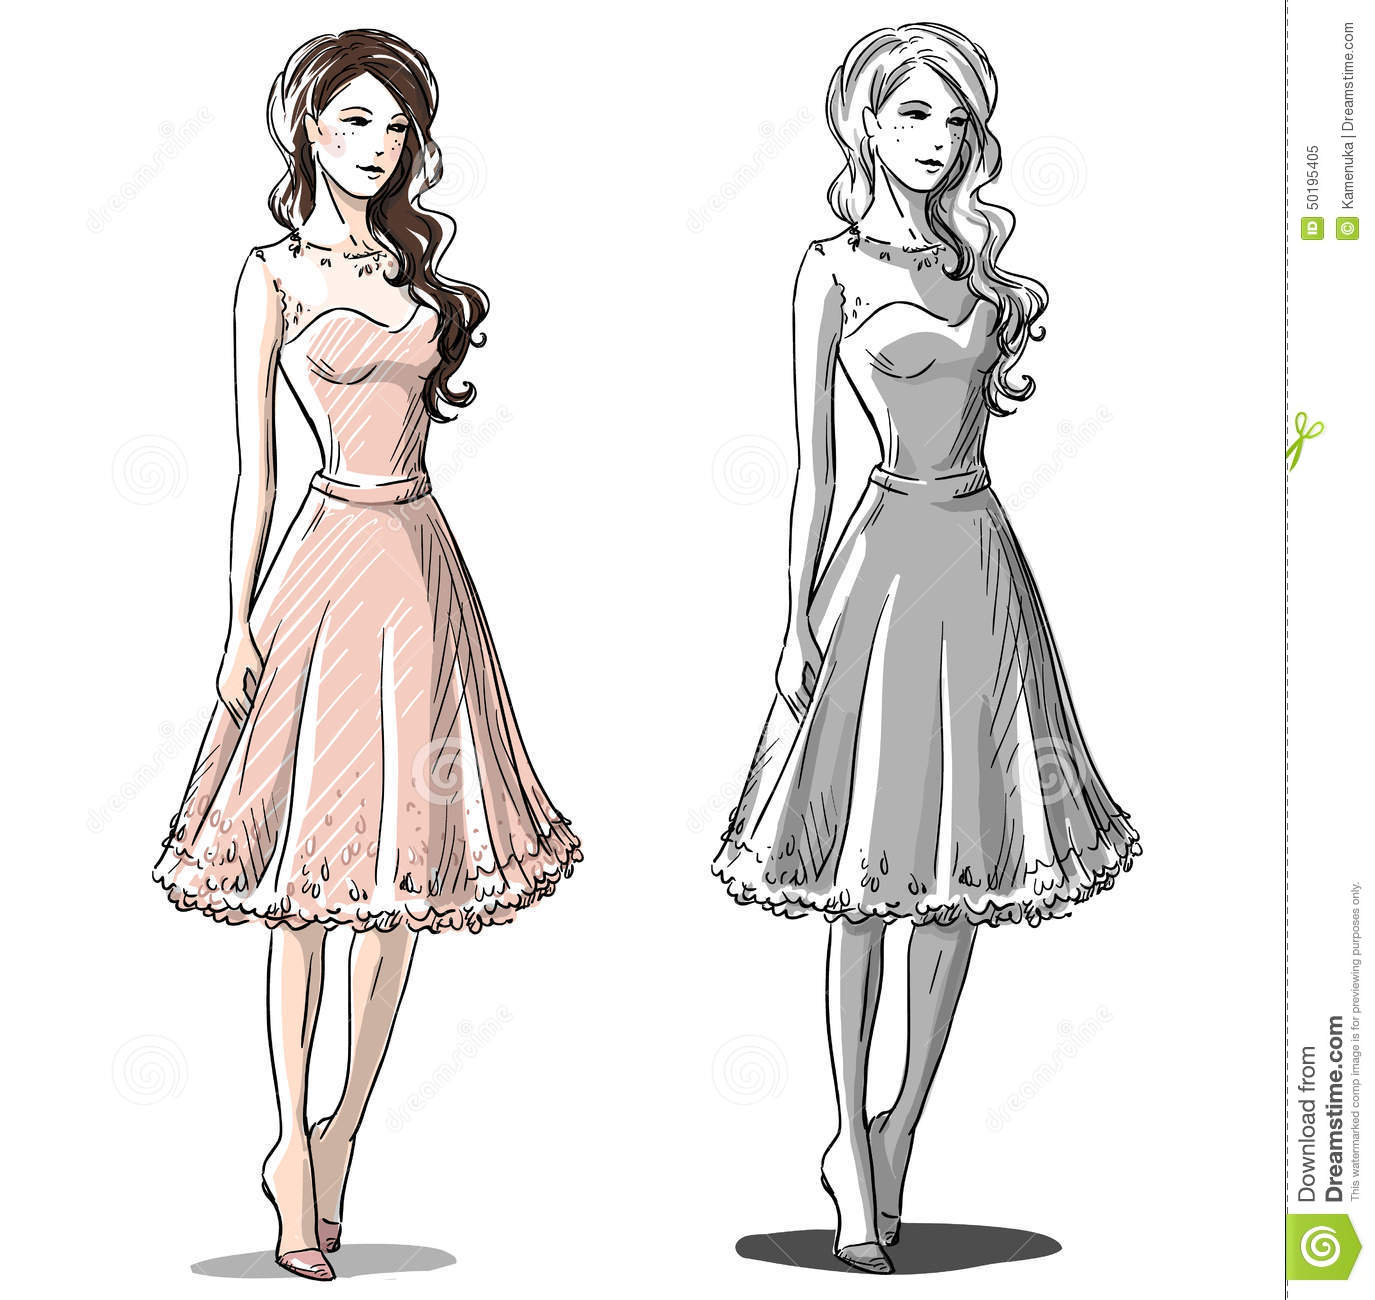 Free wedding dress sketches - Hand Drawn Illustration Prom Dress Stock Vector Image 50195405